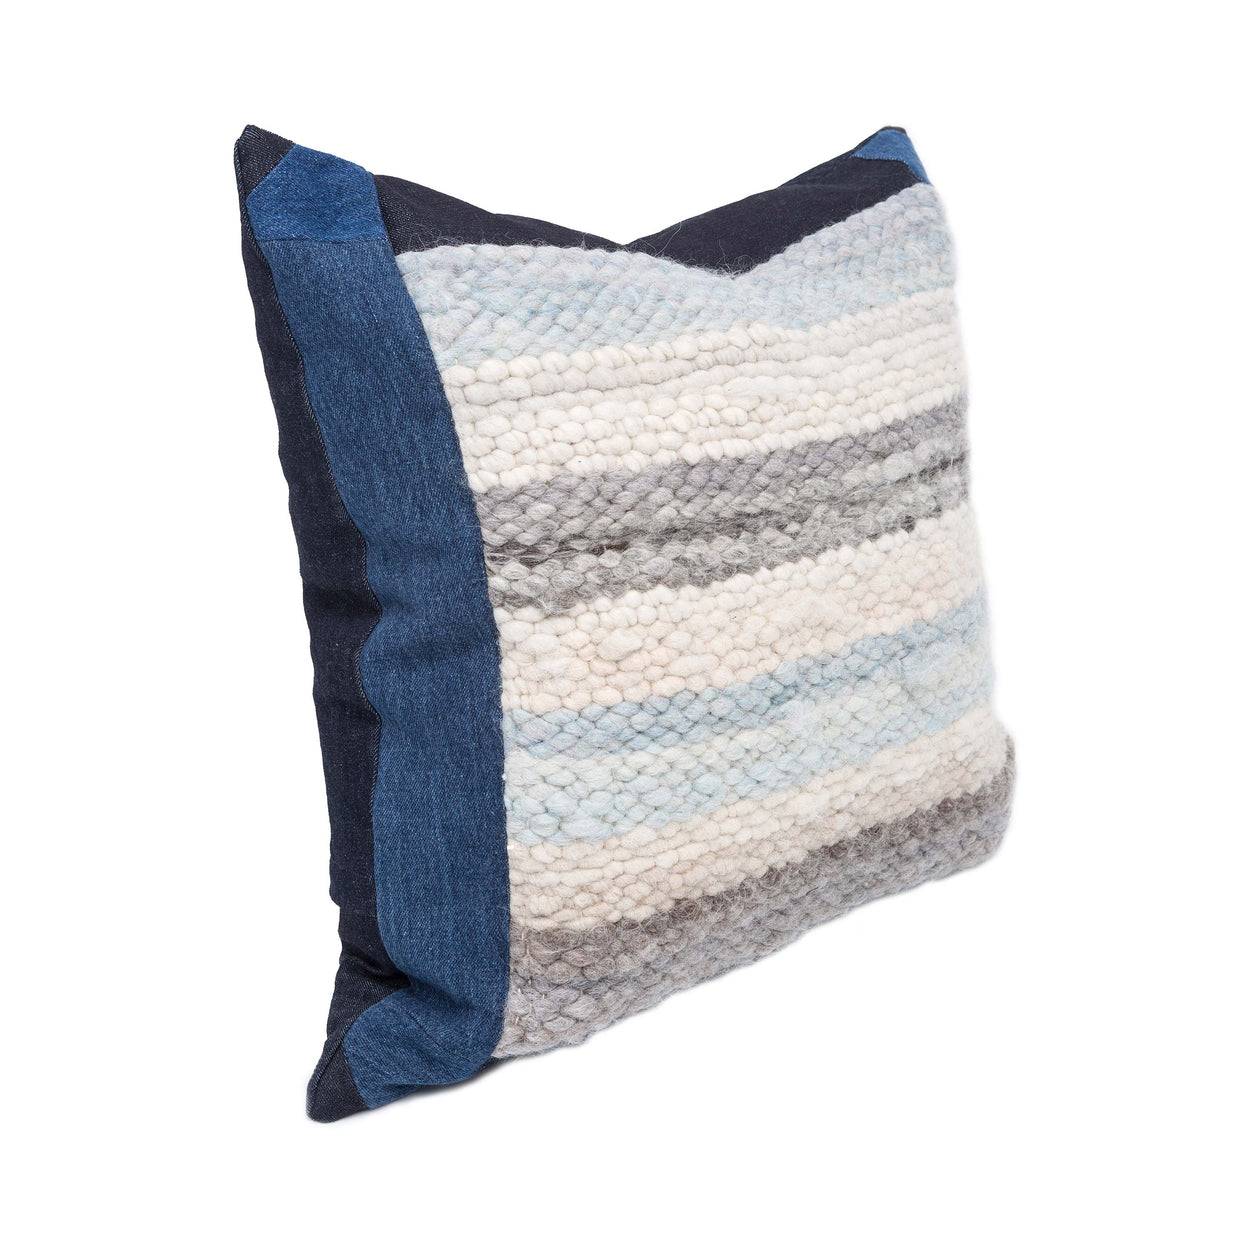 Storyteller Studio - Alpaca Farm House Pillow